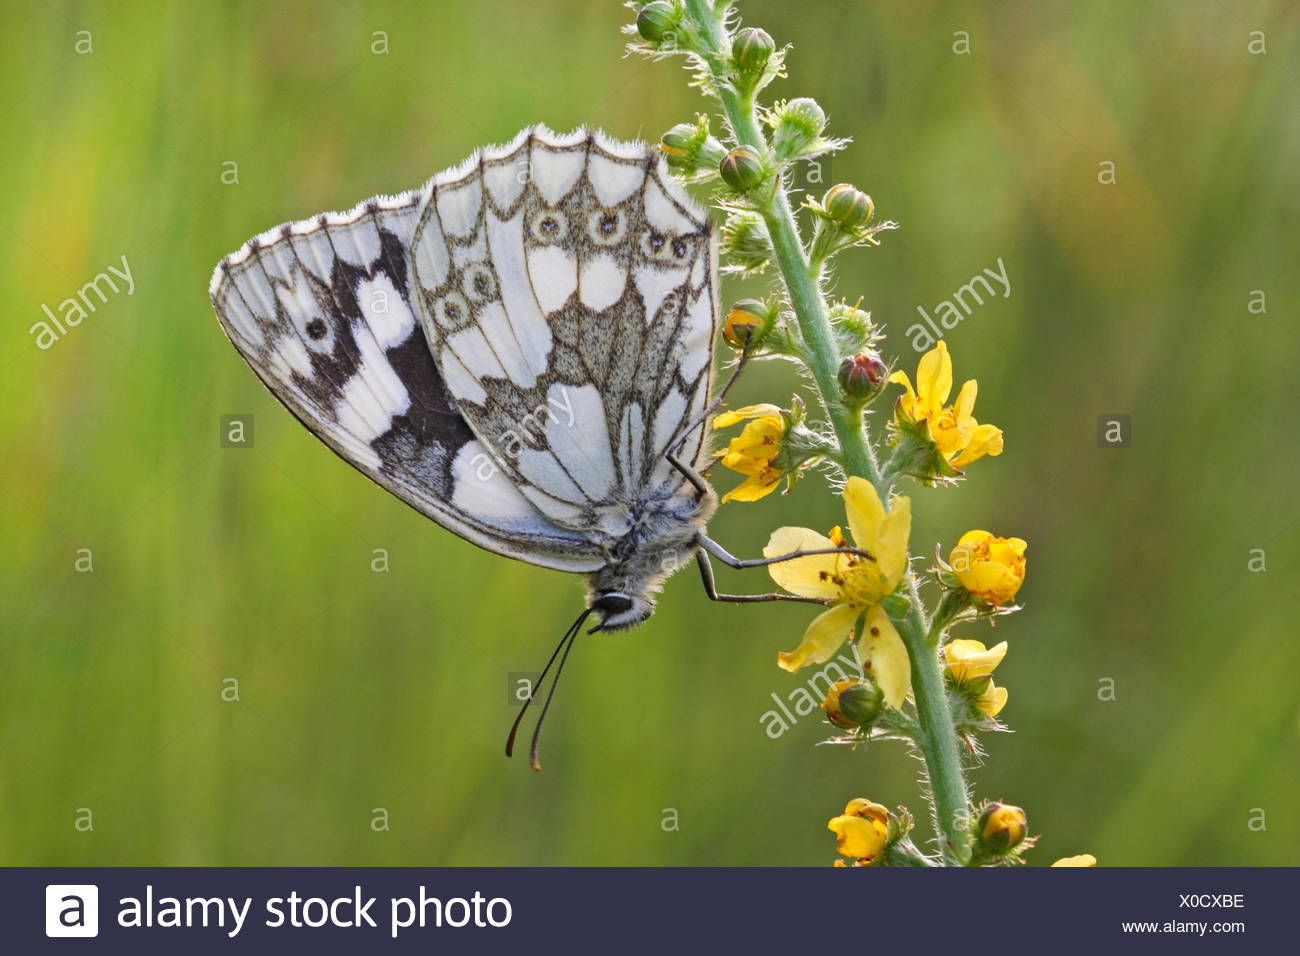 marbled white (Melanargia galathea), sitting on agrimony, Germany - Stock Image